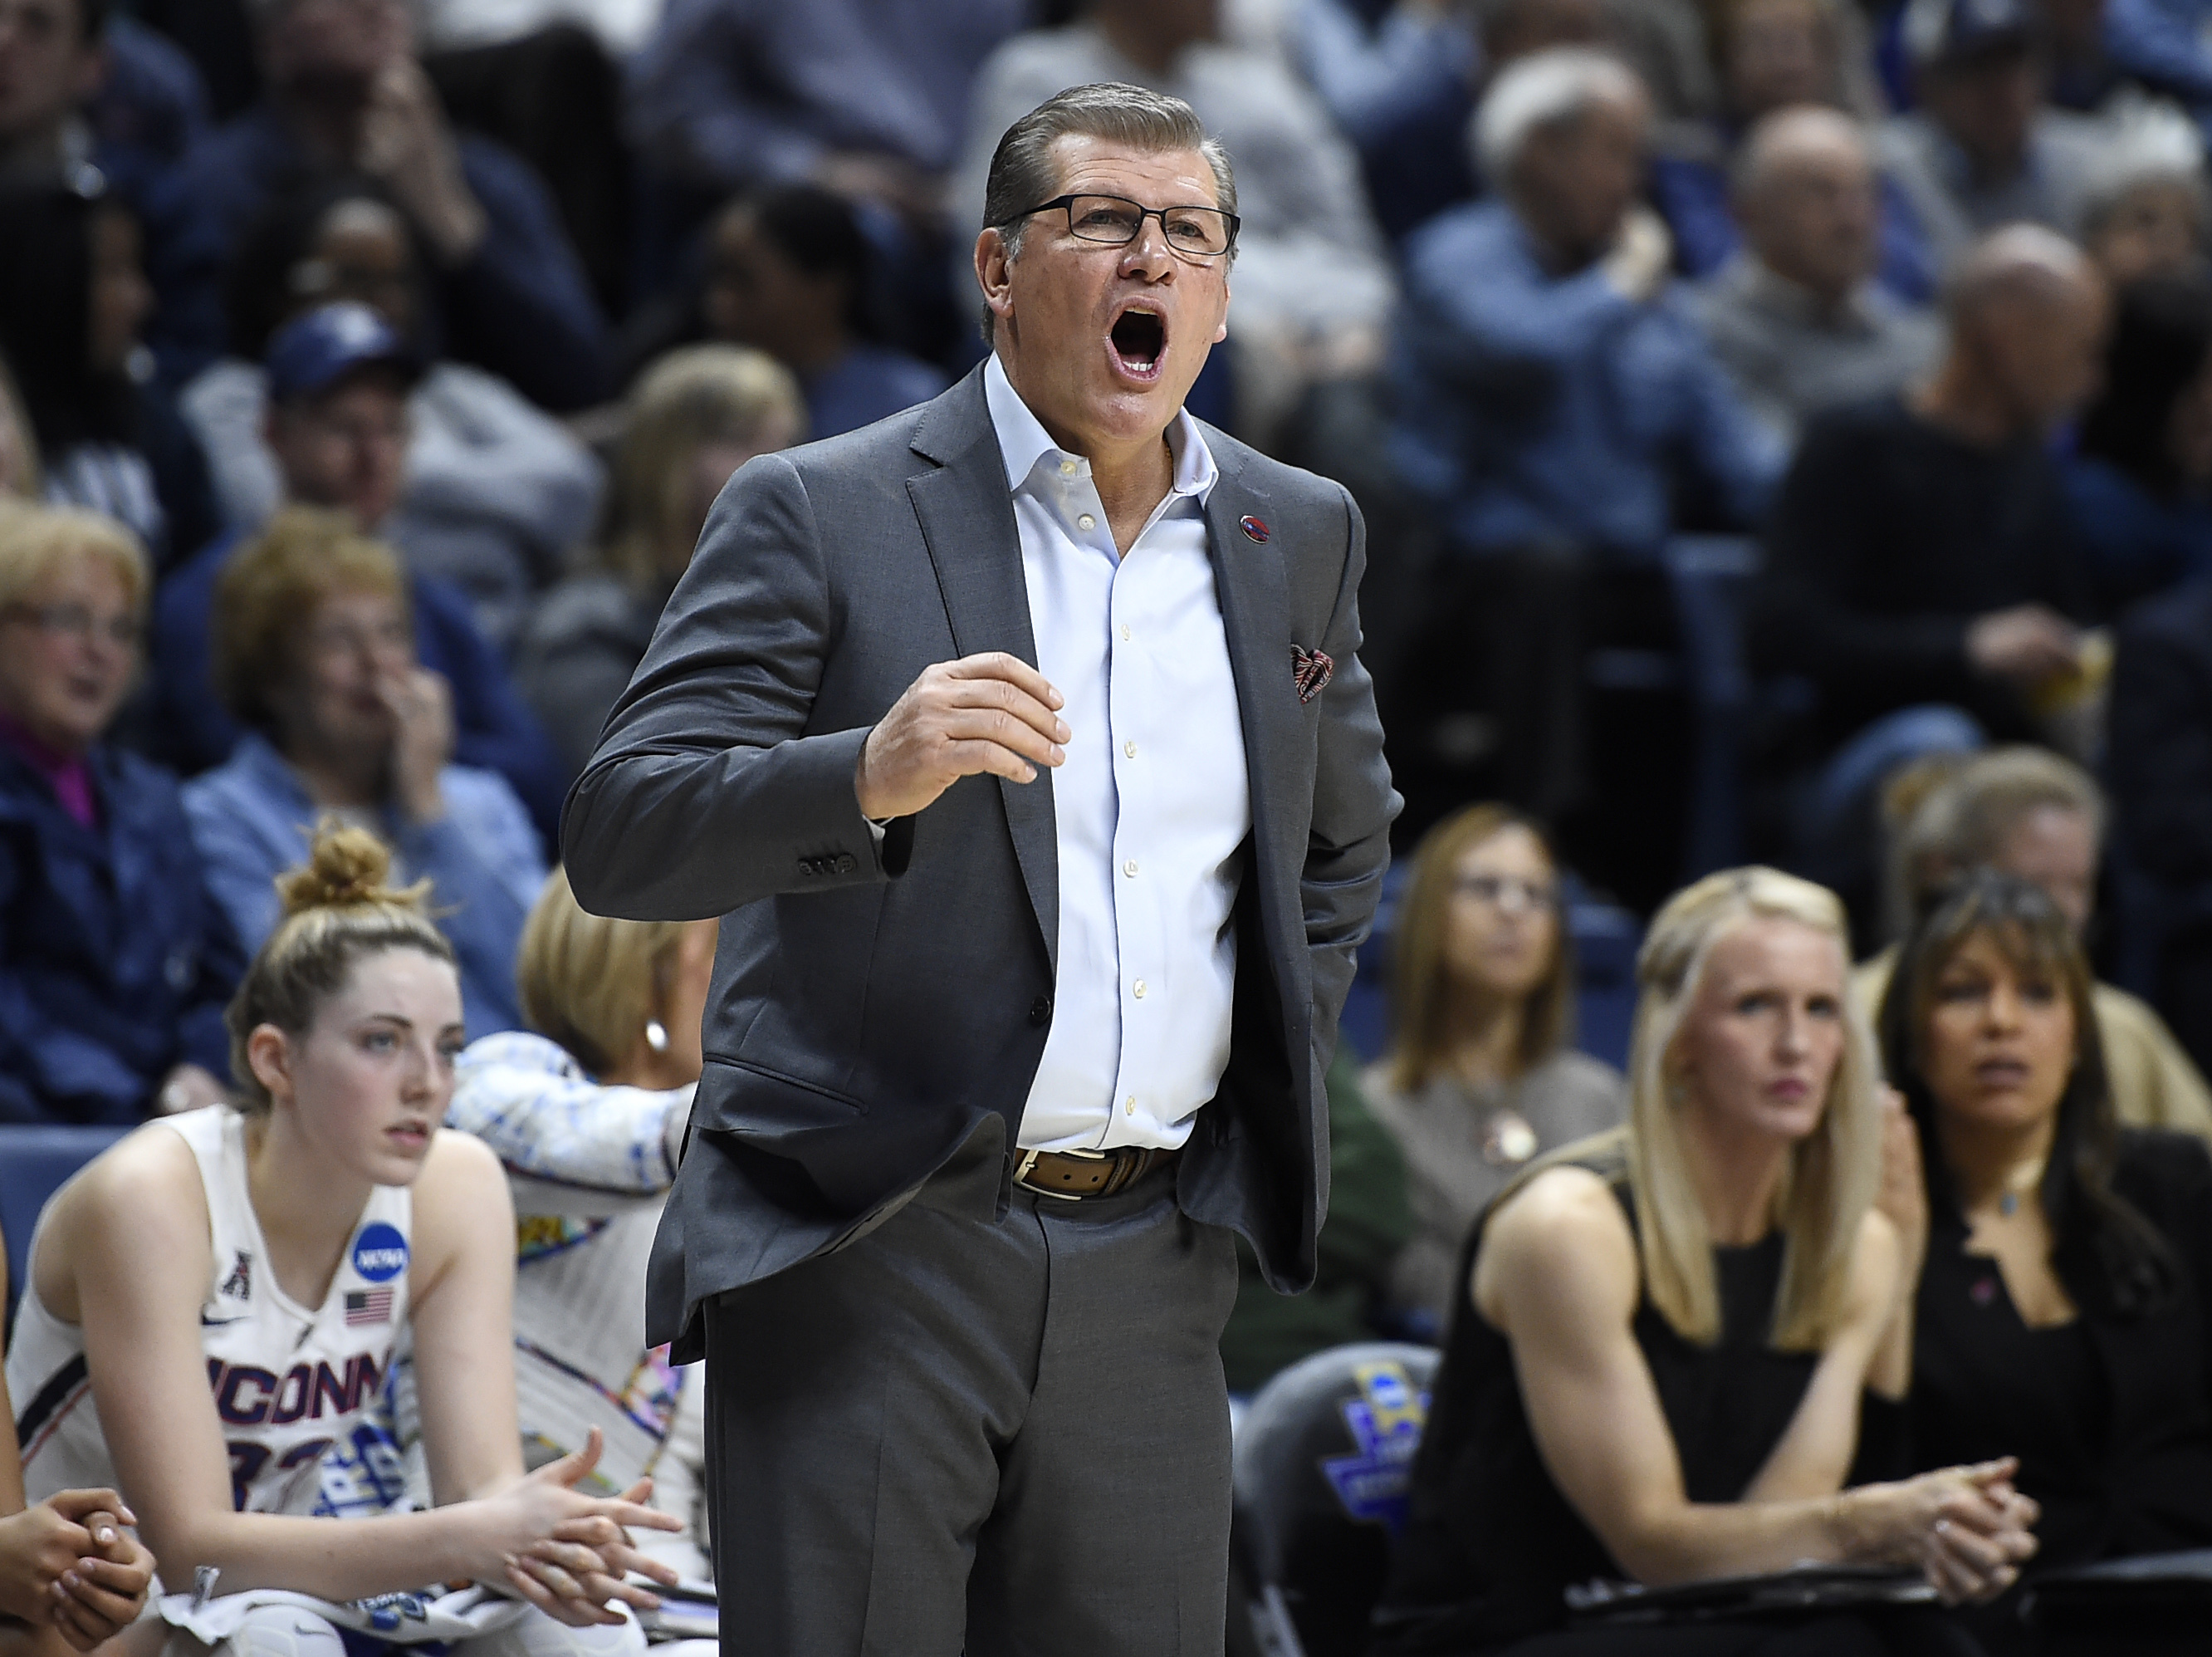 Connecticut head coach Geno Auriemma calls out to his team during the first half of a first round round of a women's college basketball game against Albany in the NCAA Tournament, Saturday, March 18, 2017, in Storrs, Conn. (AP Photo/Jessica Hill)